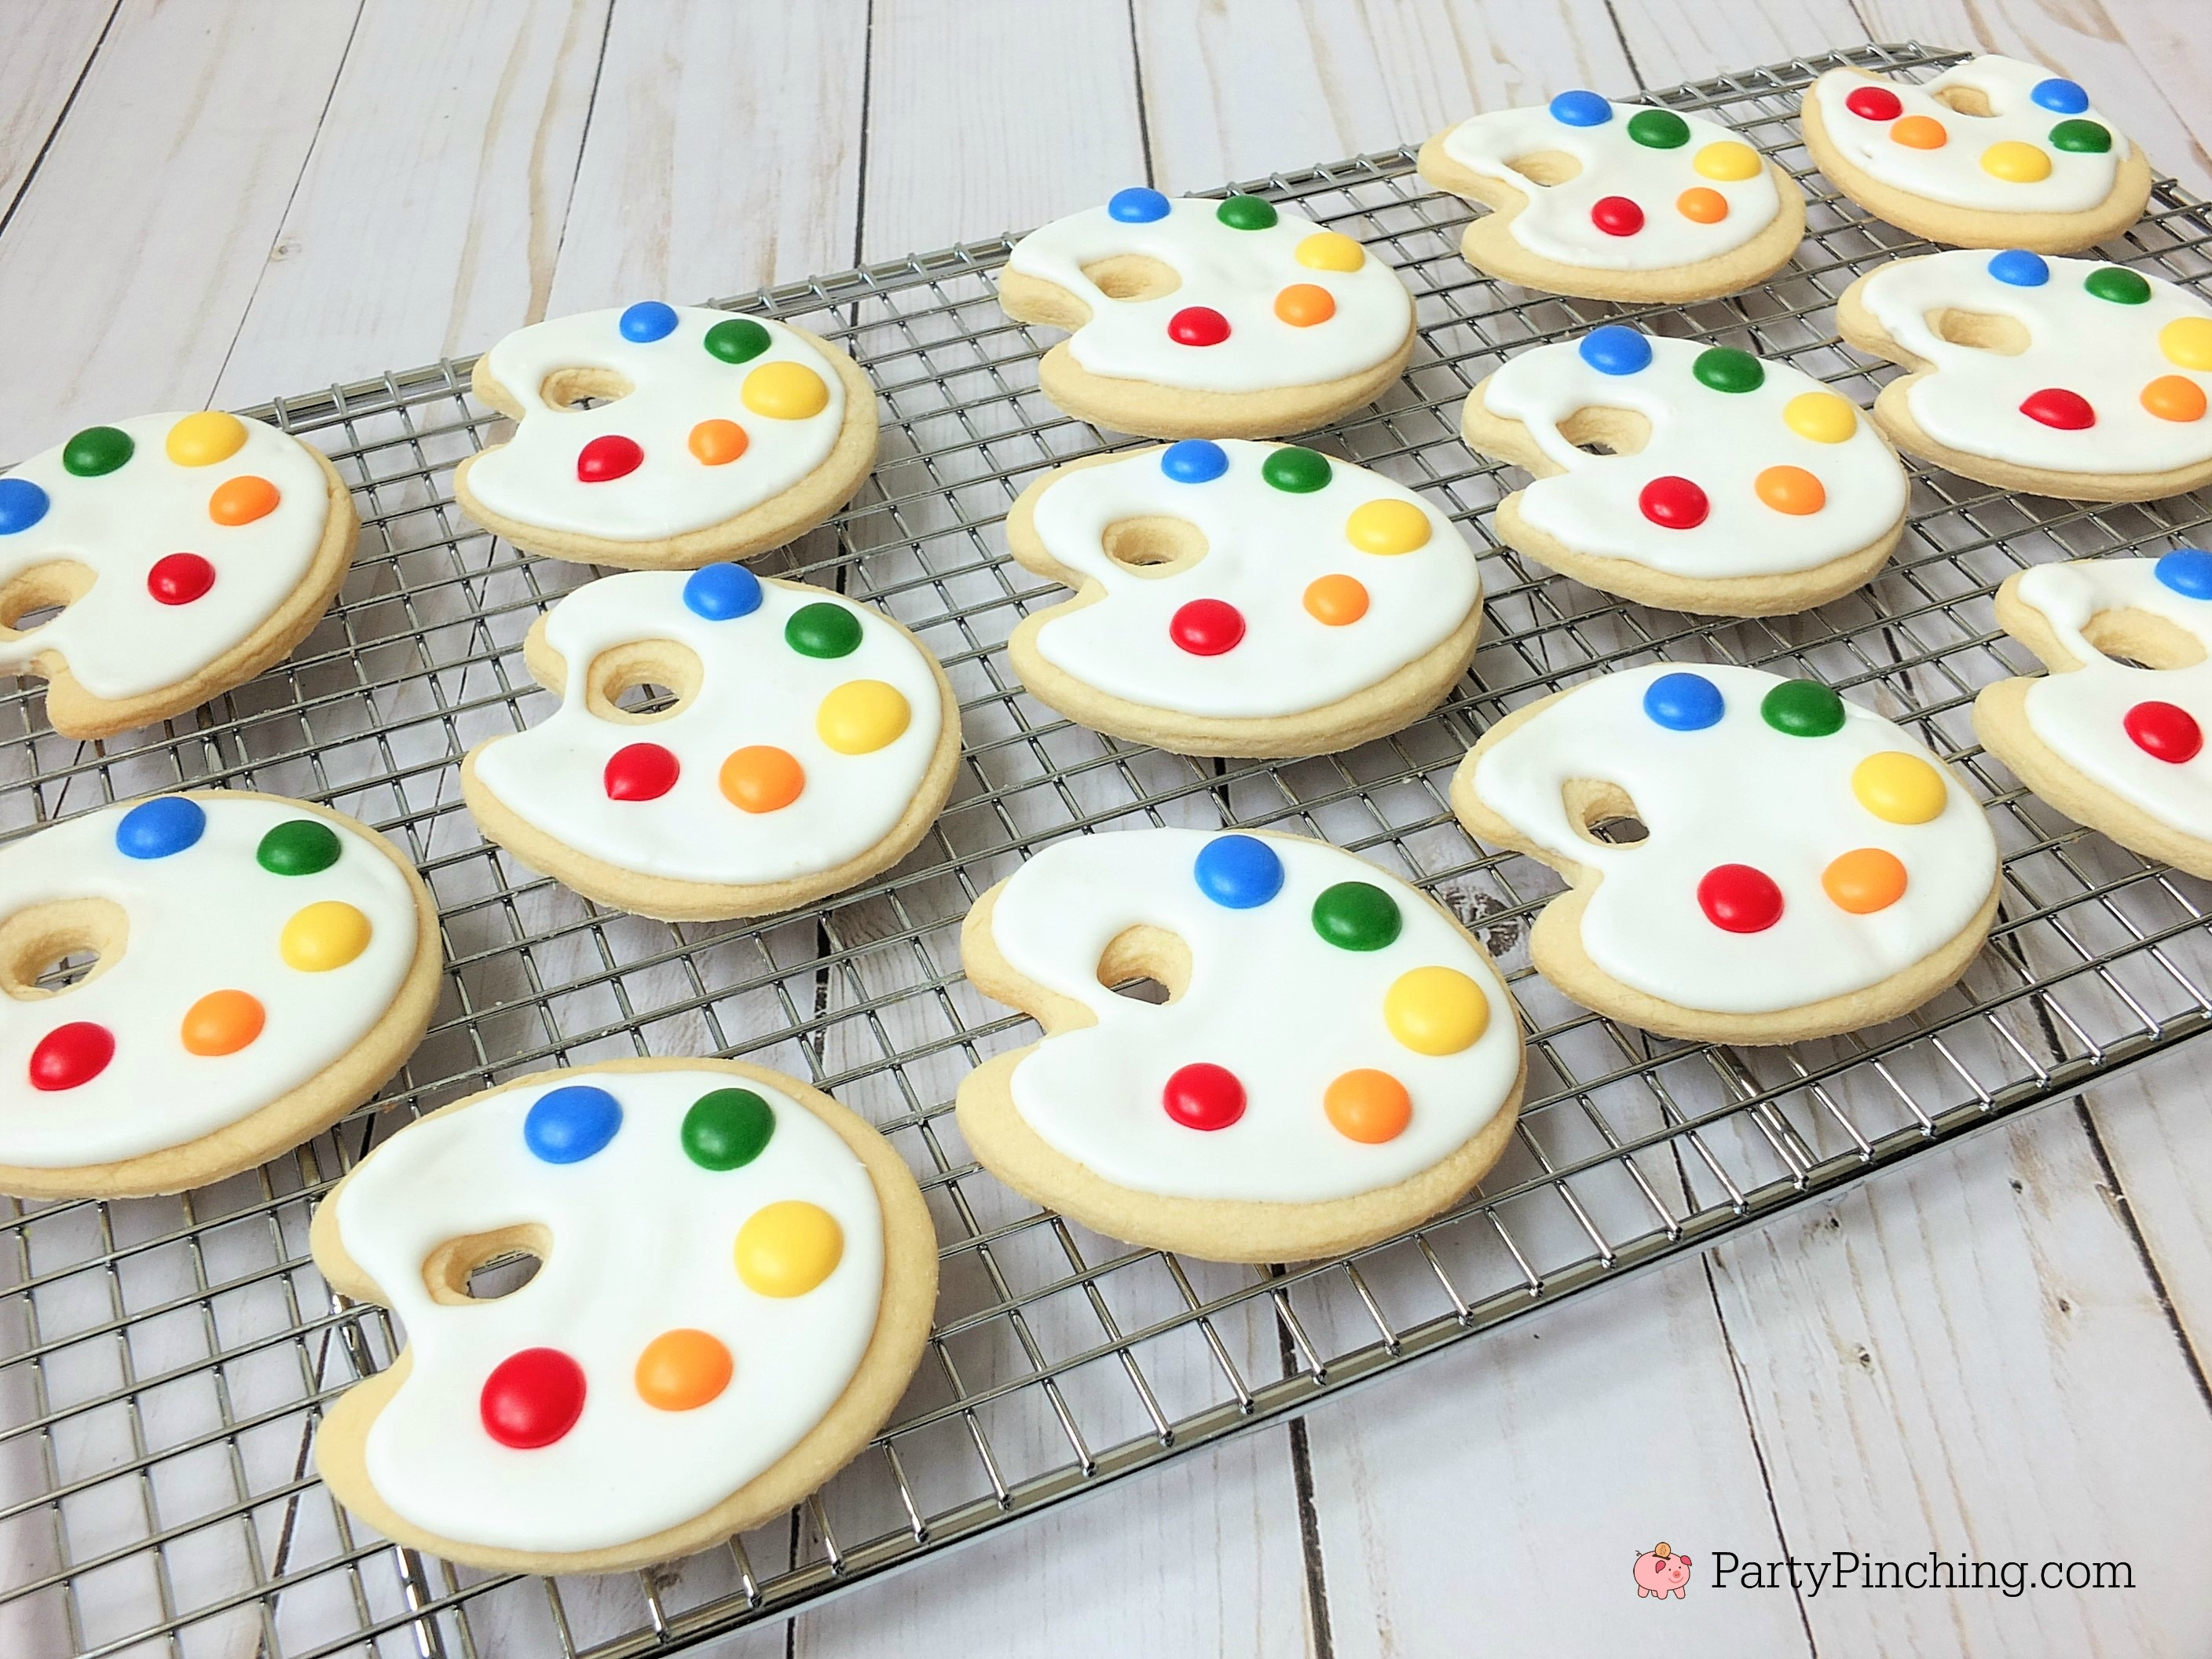 art cookies, art palette cookies, cute treats and food for art theme party, art party ideas, paint cookies